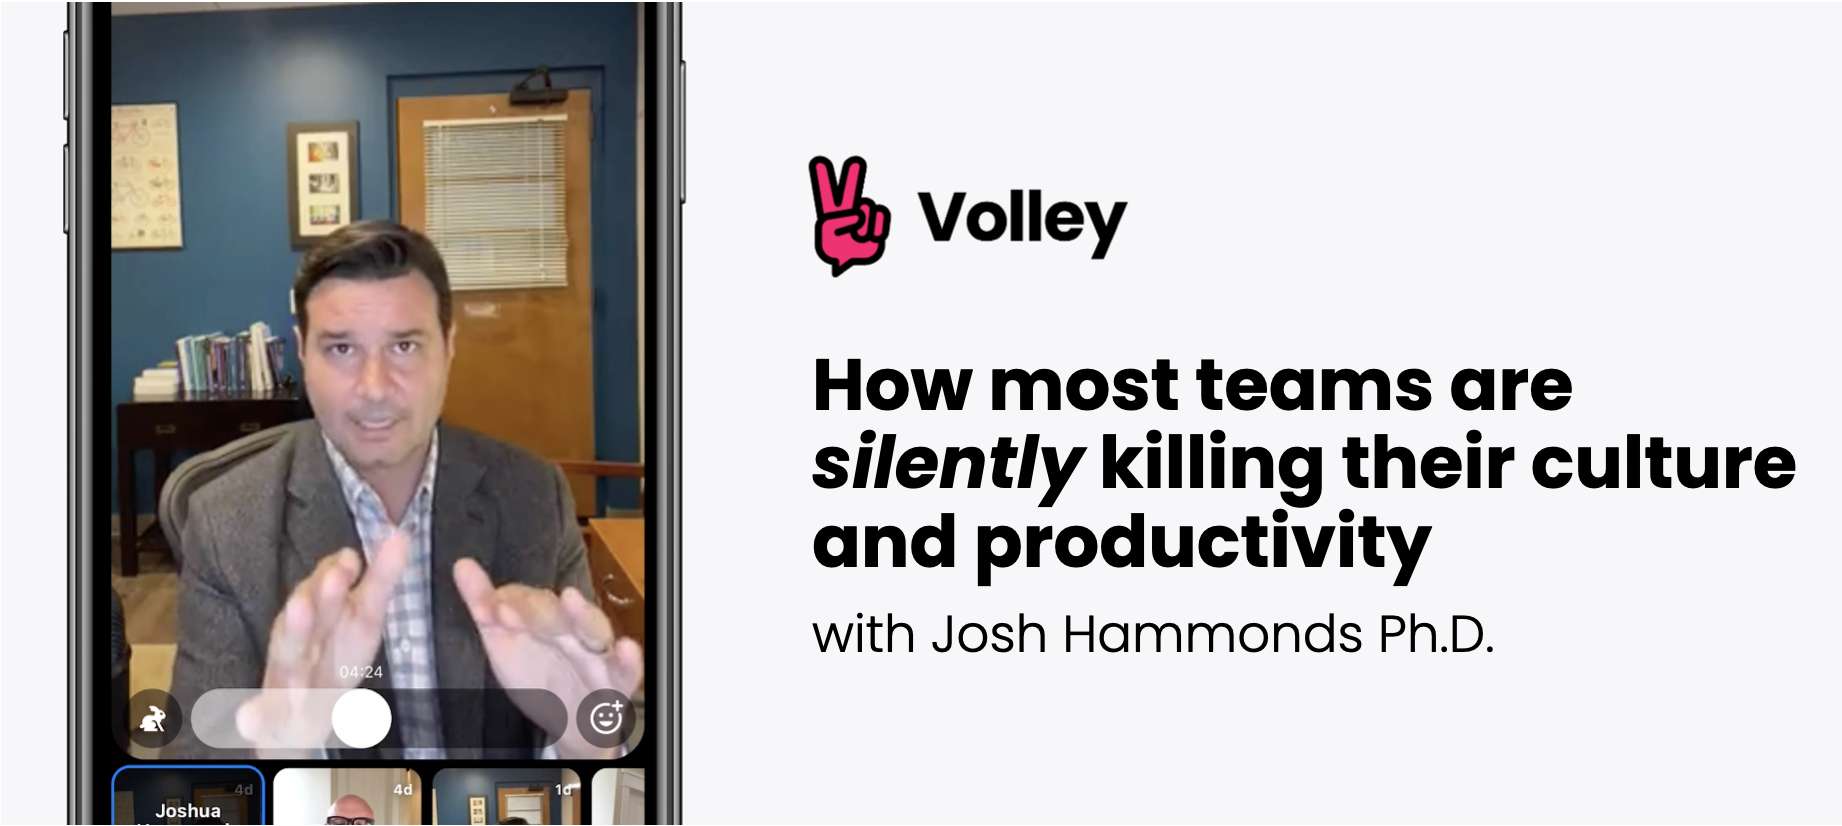 How most teams are silently killing their culture and productivity - with Josh Hammonds Ph.D.